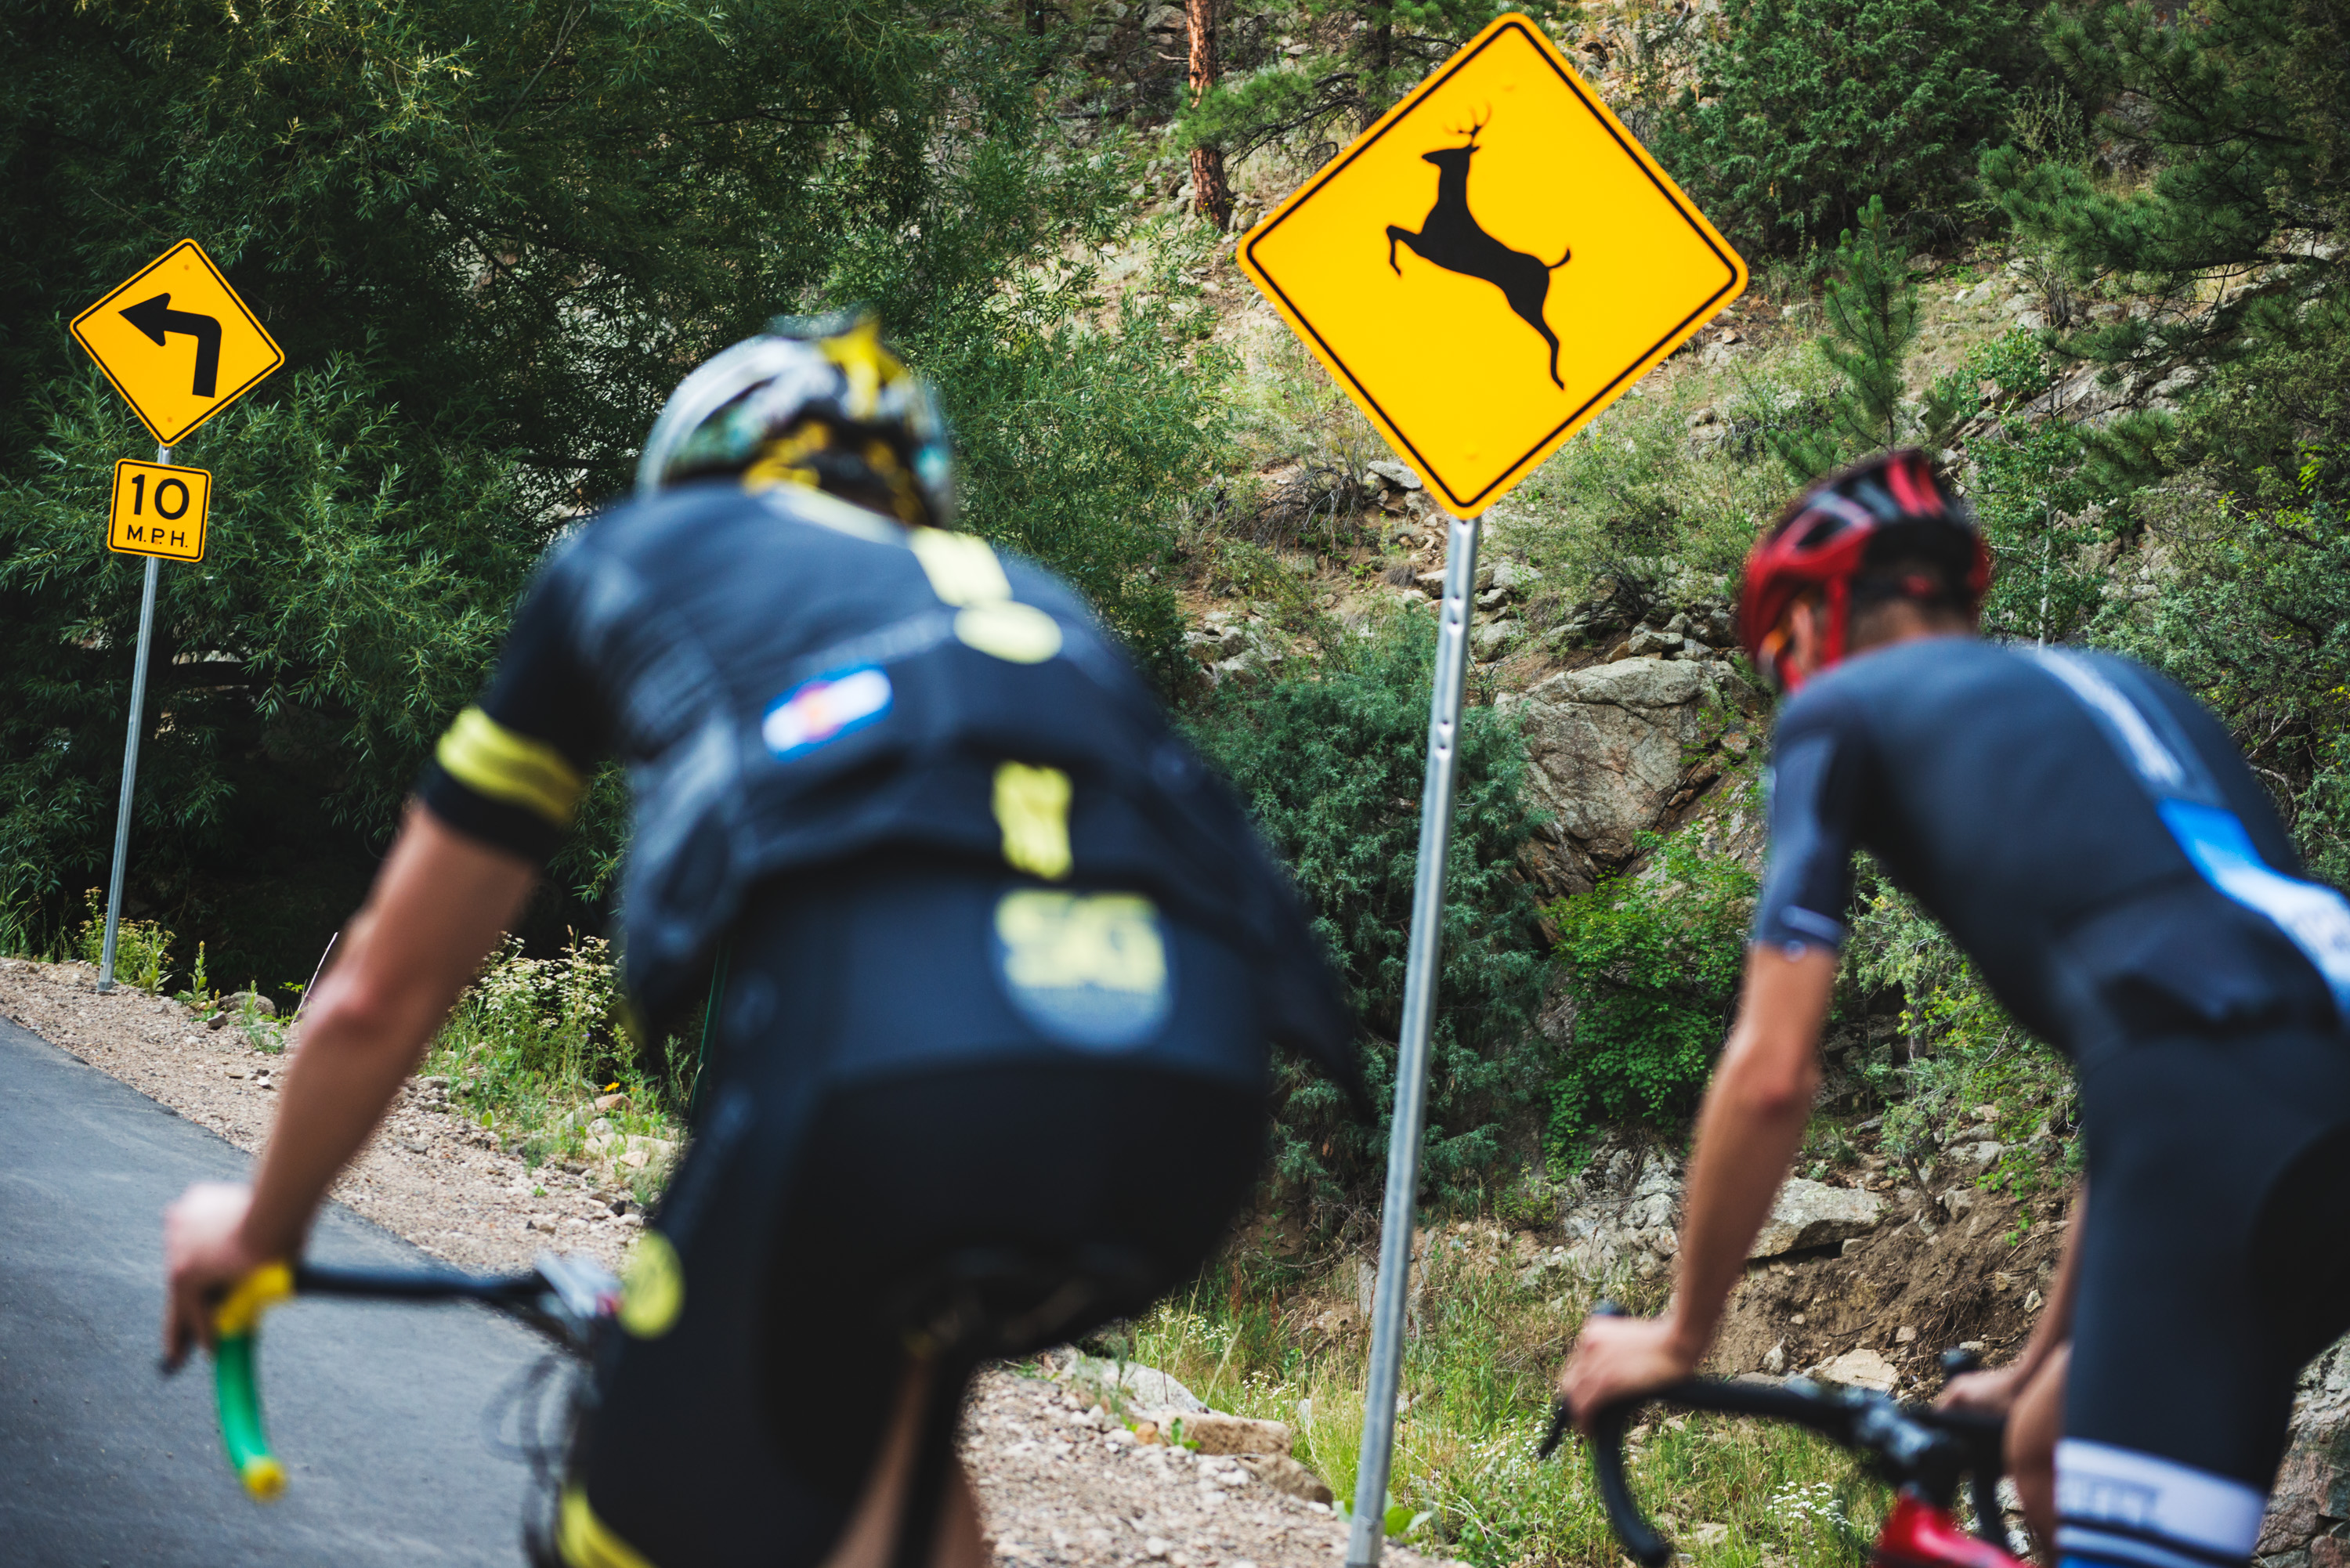 Colorado Road Cycling - Greg Mionske - Advertising and Editorial Photographer in Denver